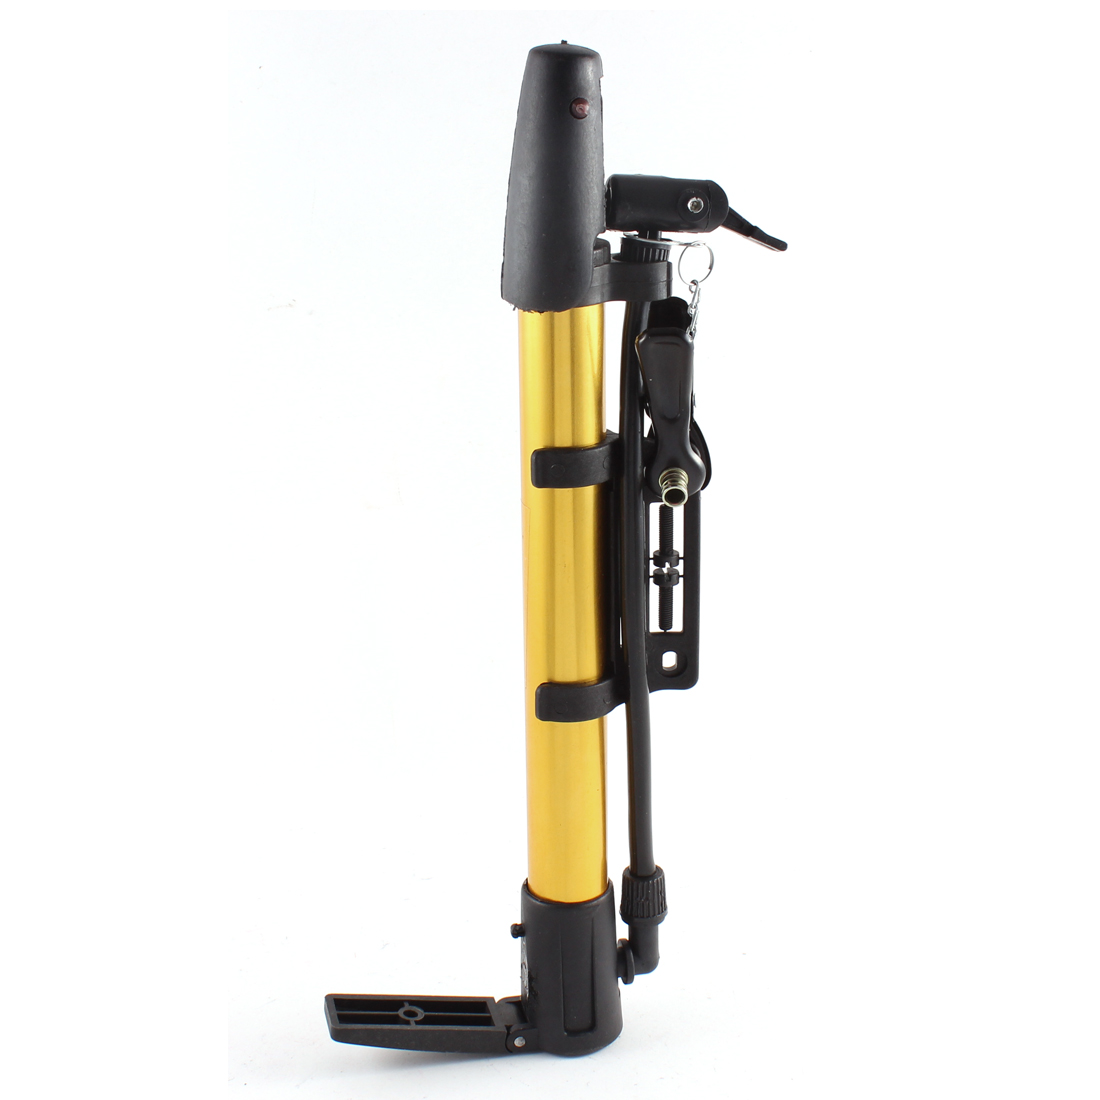 Bicycle Bike Tyre Manual Floor Pump Basketball Inflator Gold Tone